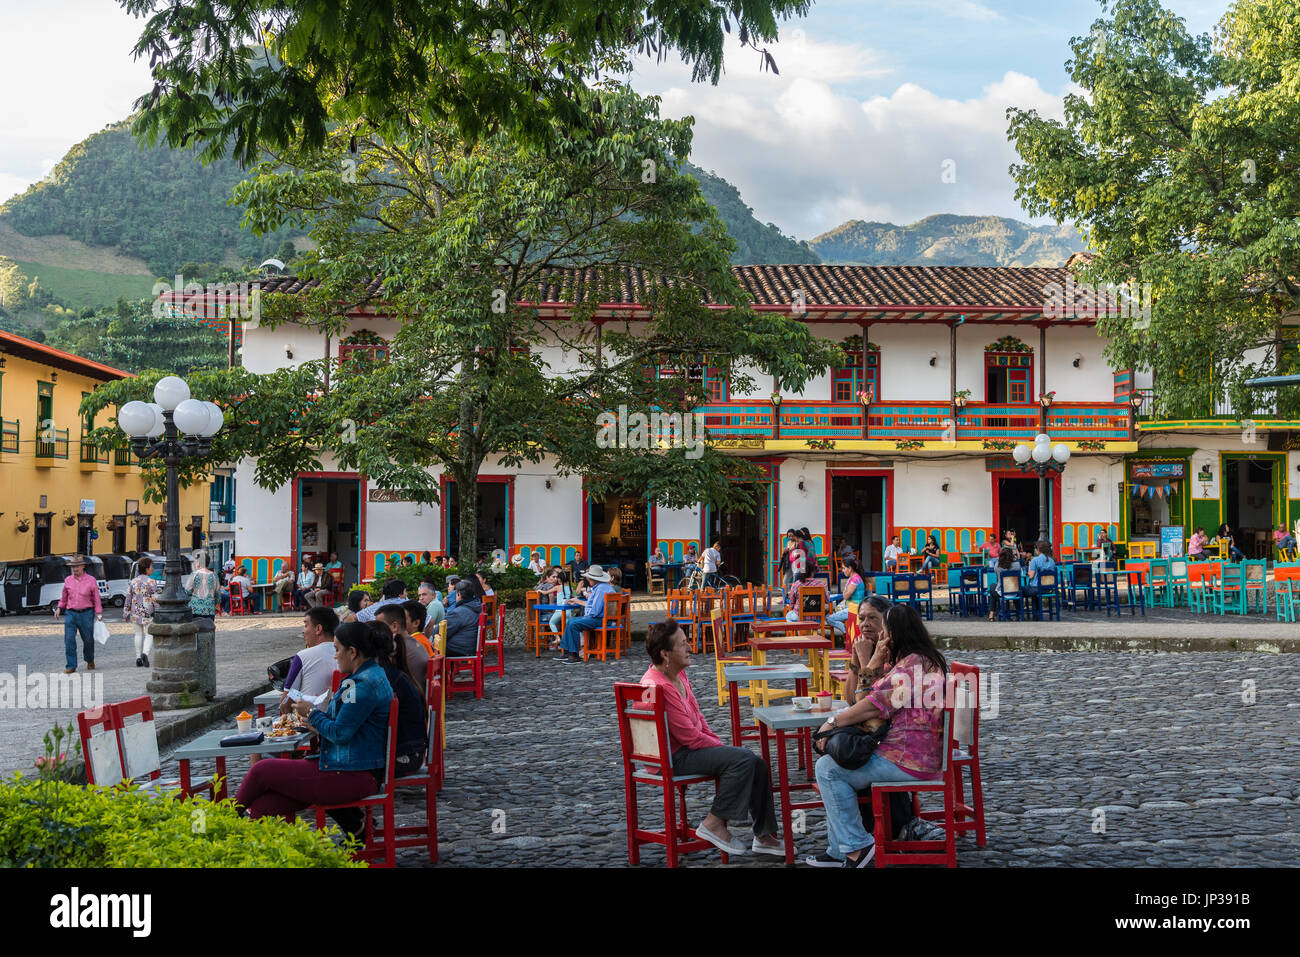 Locals And Visitors Enjoy The Day In Historic Town Center Jardin